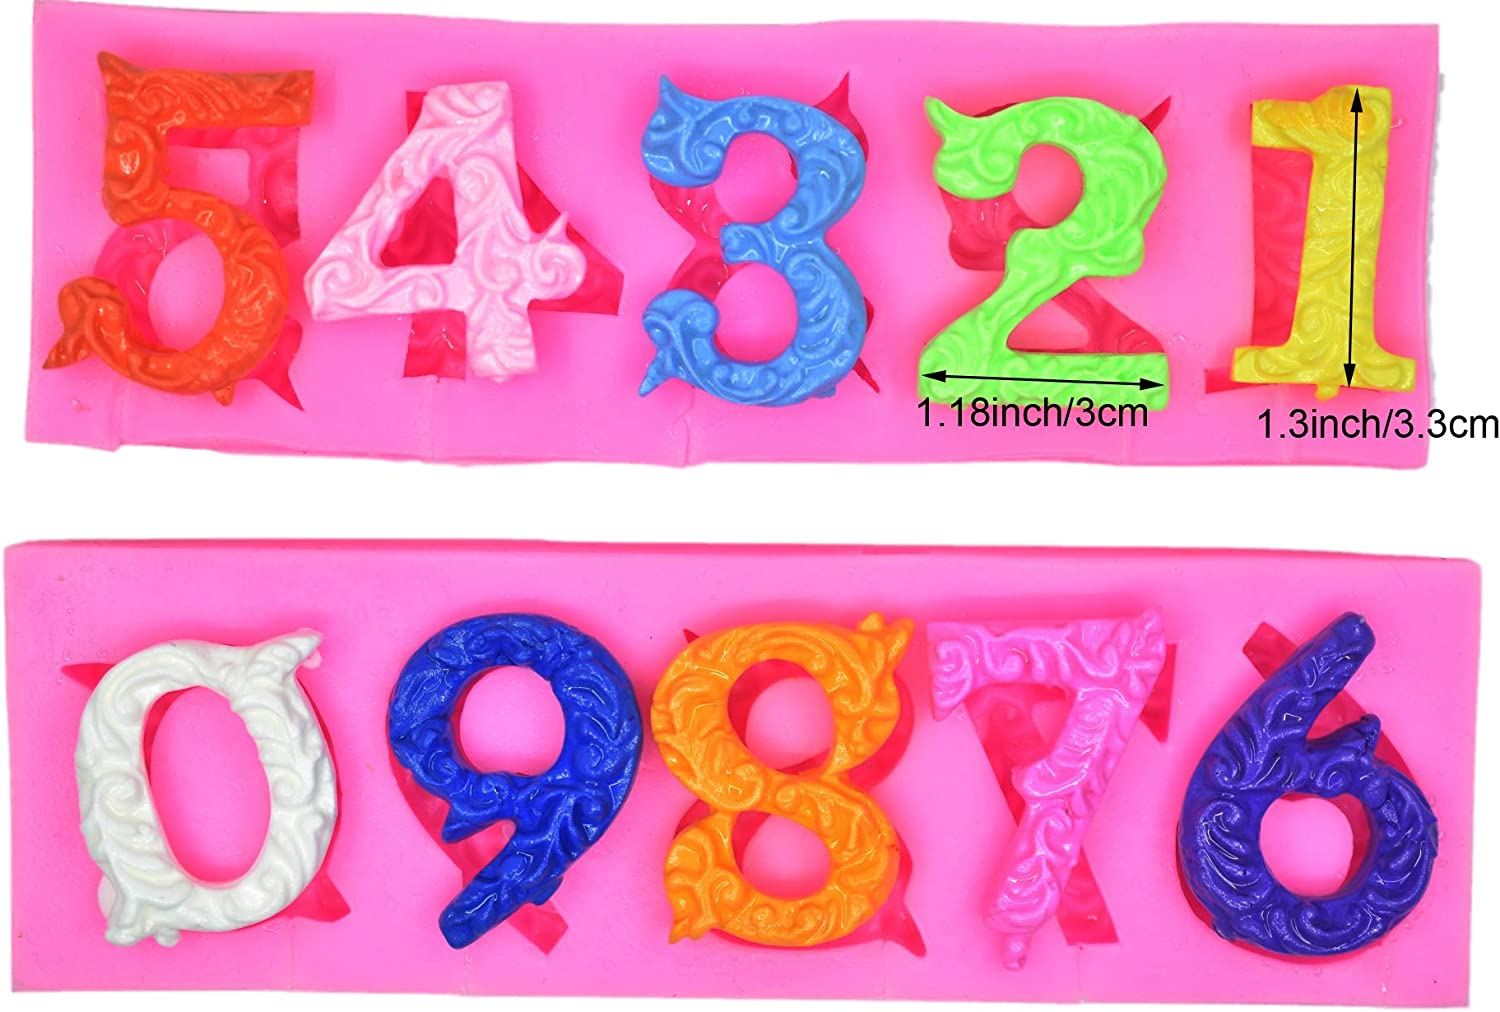 2018 Silicone Letter//Number Mold Fondant Sugar Craft Cake Decorating Tools